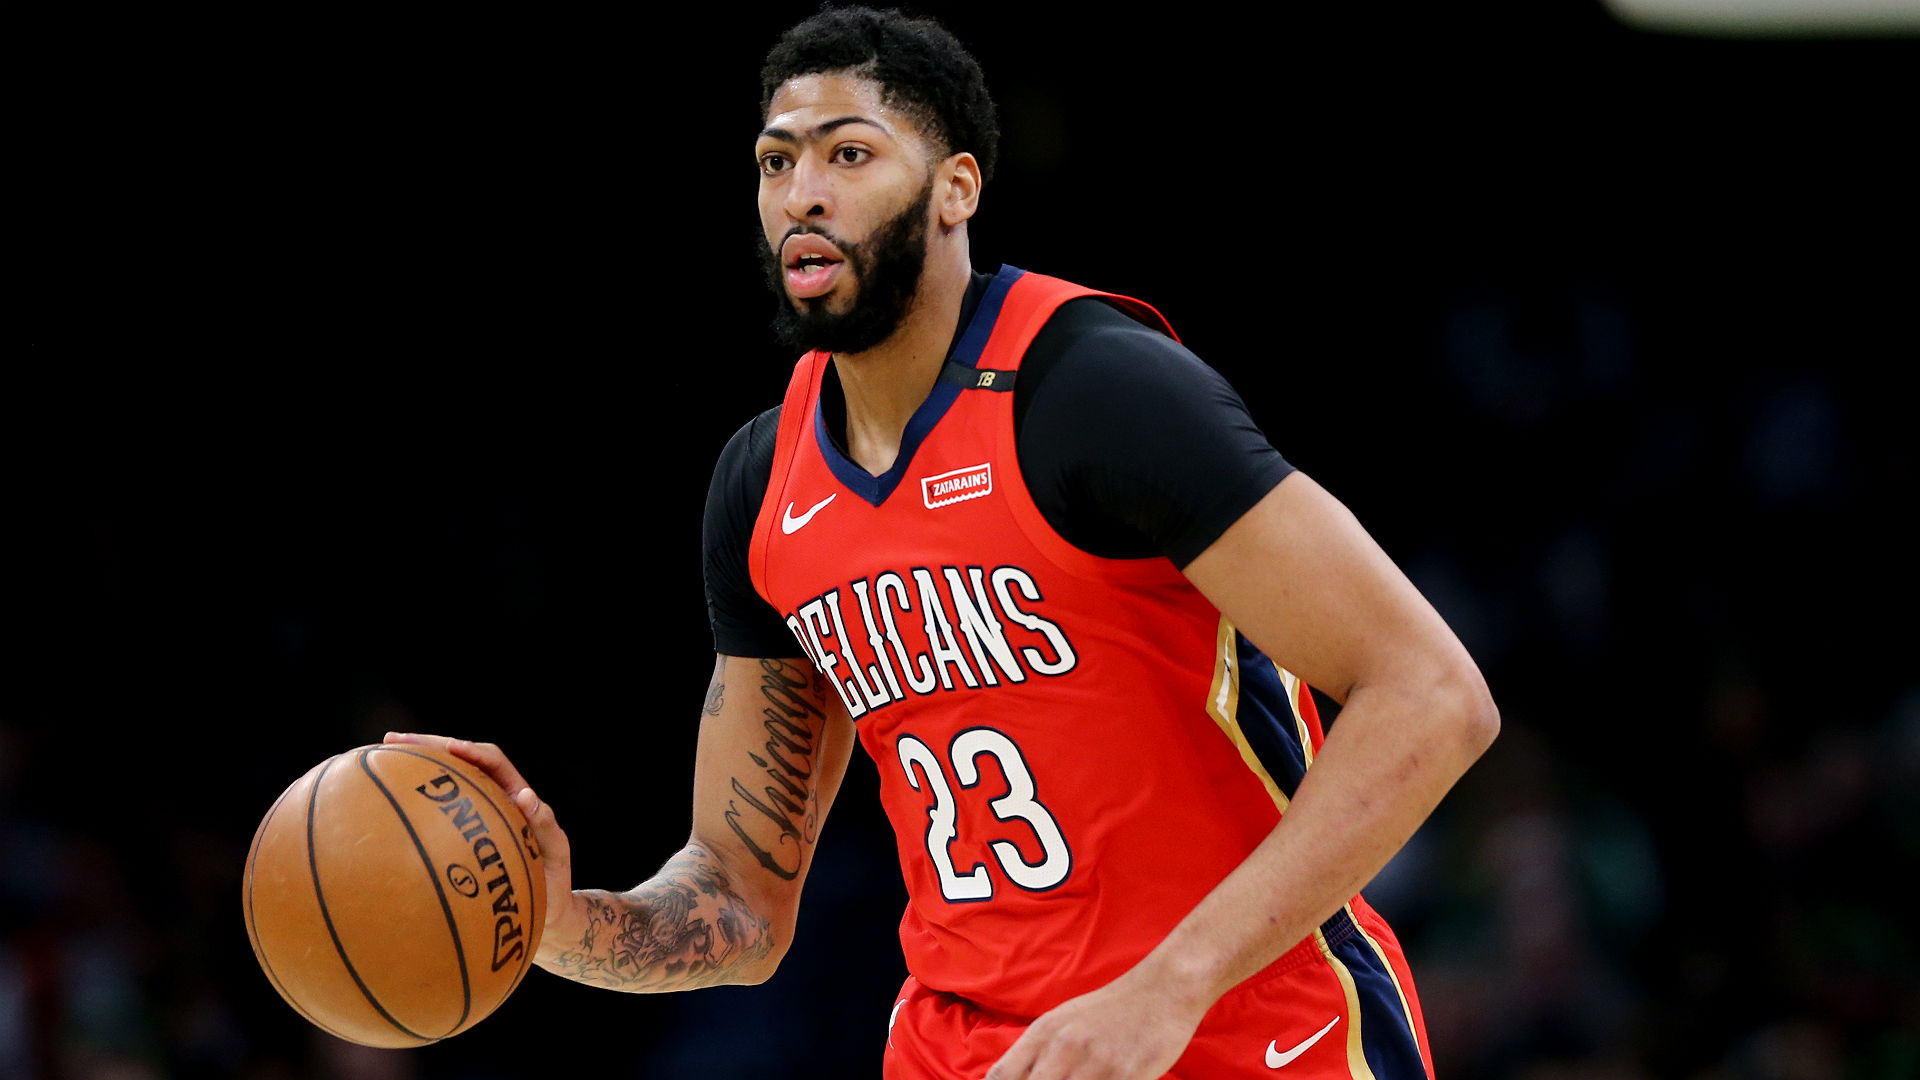 Pelicans star Davis could return next week, agent says